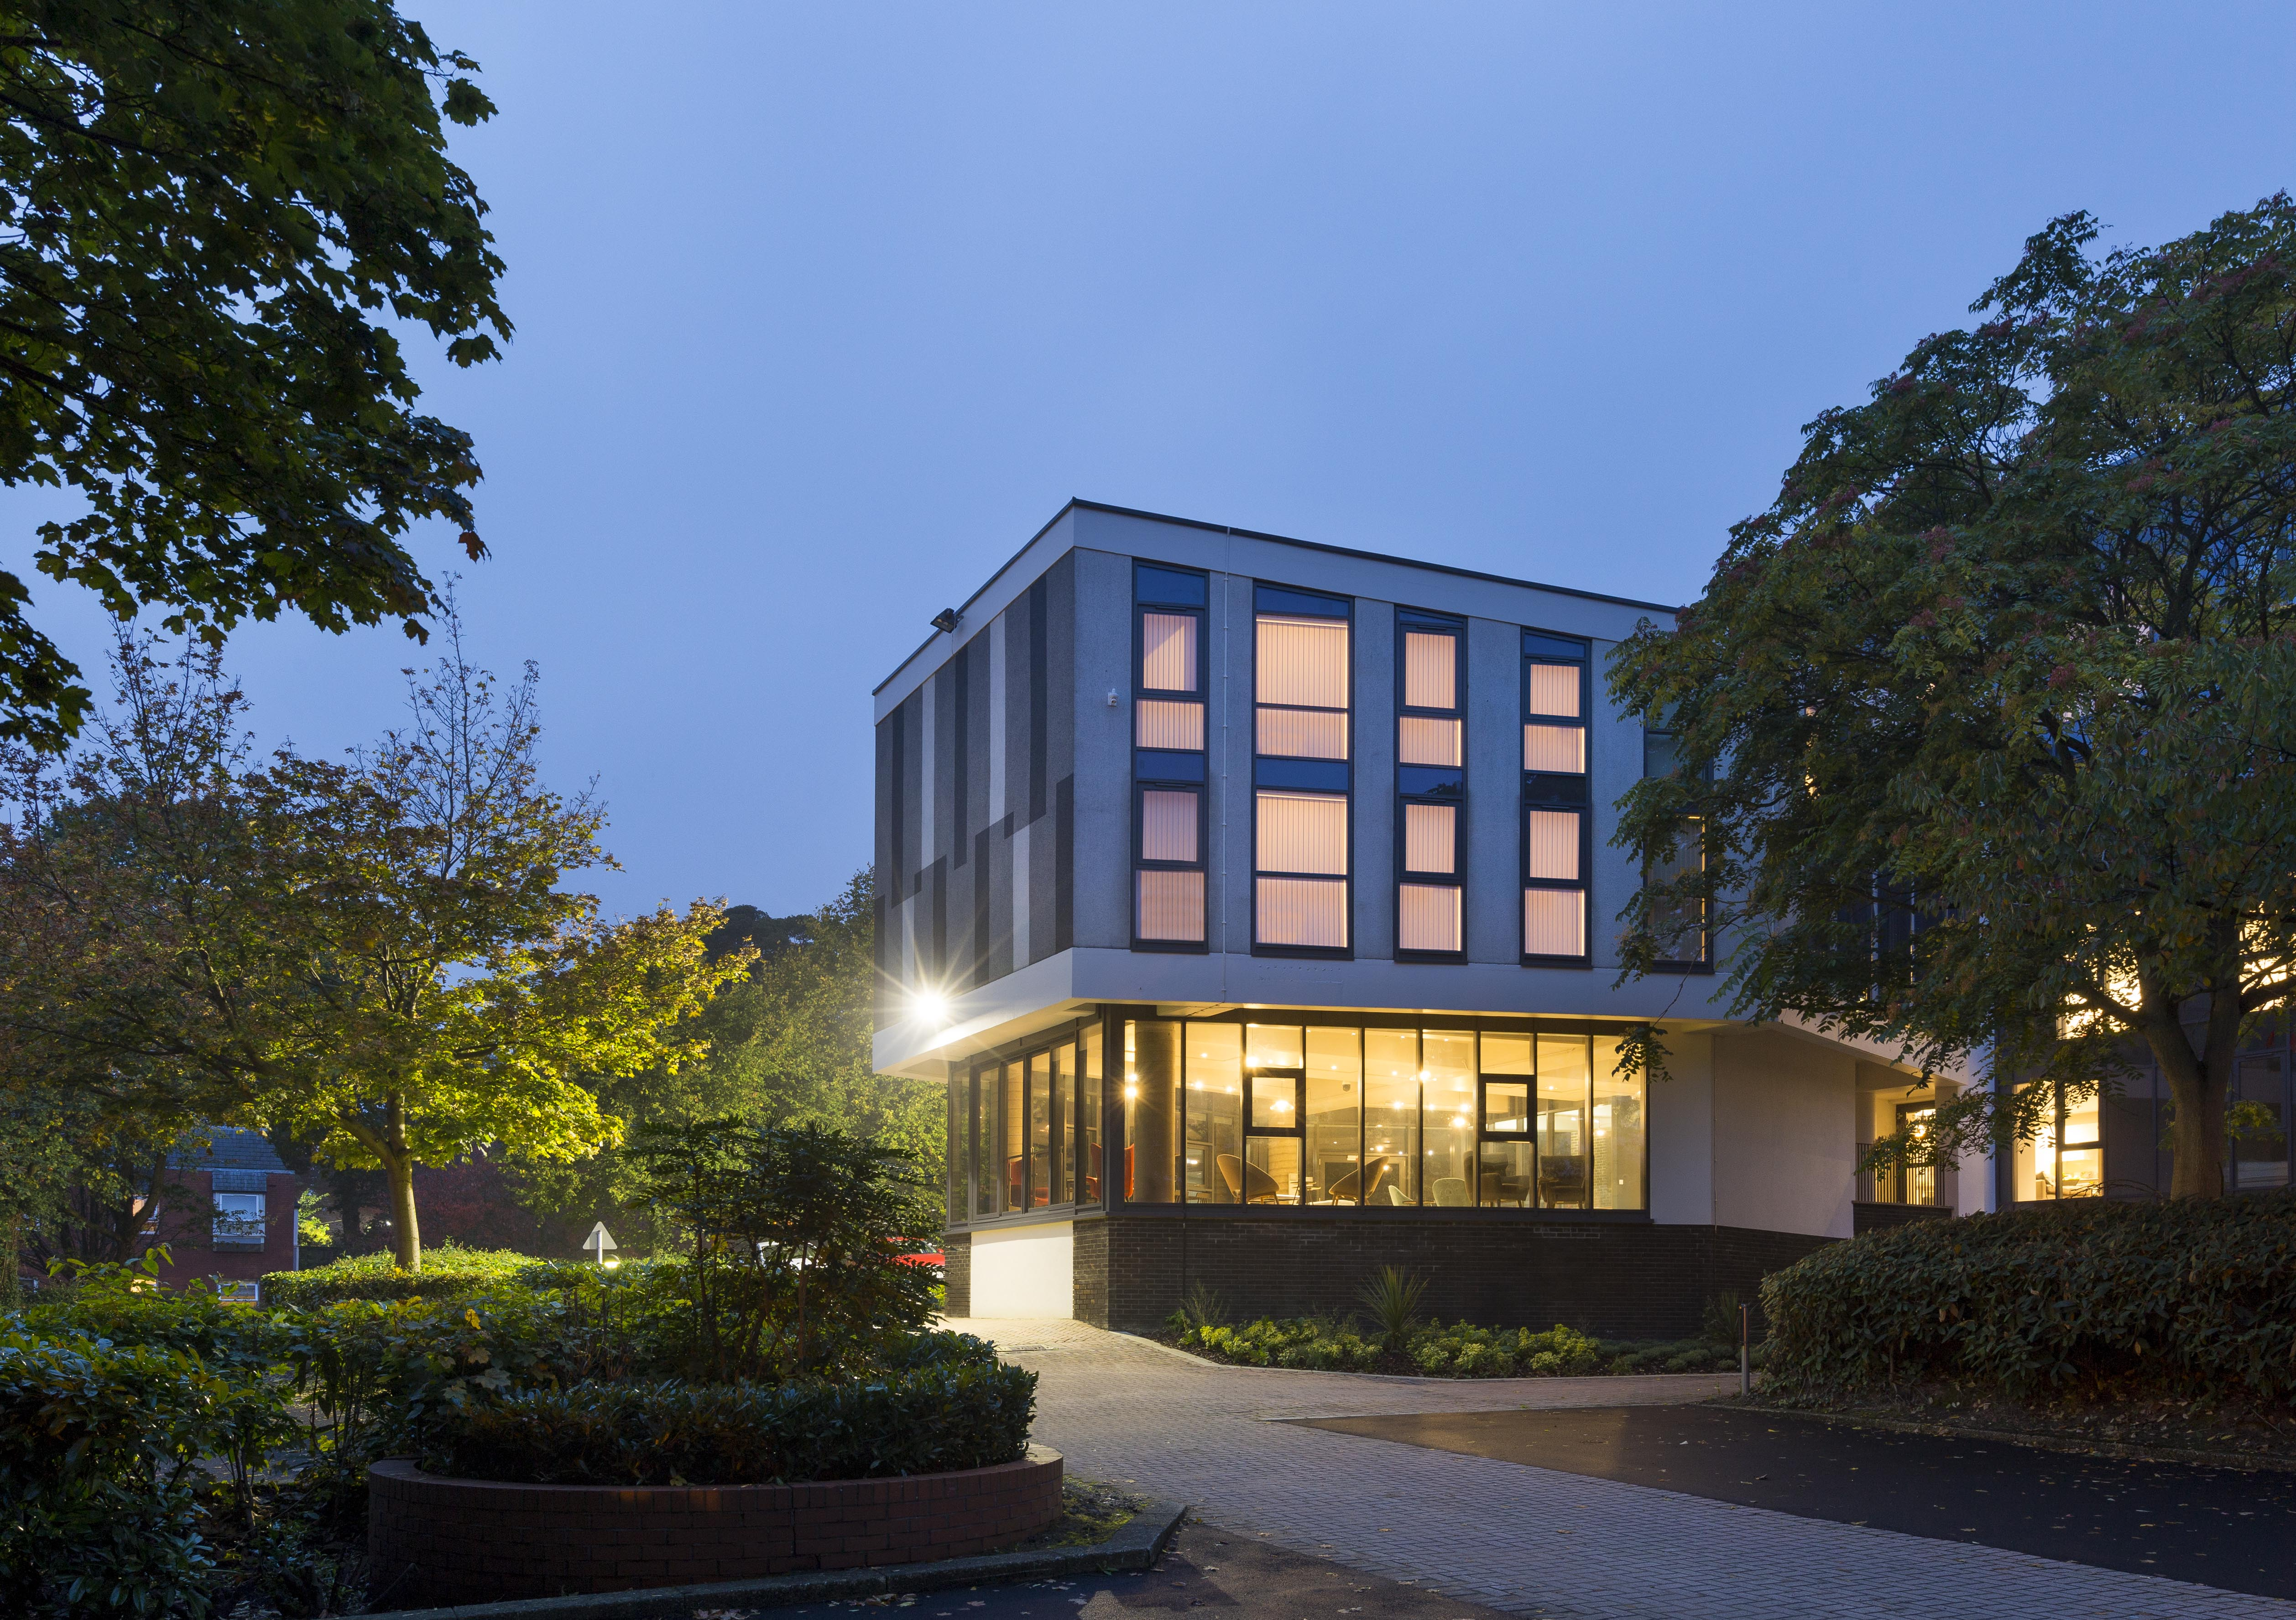 ADDINGTON CAPITAL ACHIEVES PLANNING PERMISSION TO CONVERT LAST BUILDING AT HEADINGLEY PARK, LEEDS TO RESIDENTIAL (PRS)